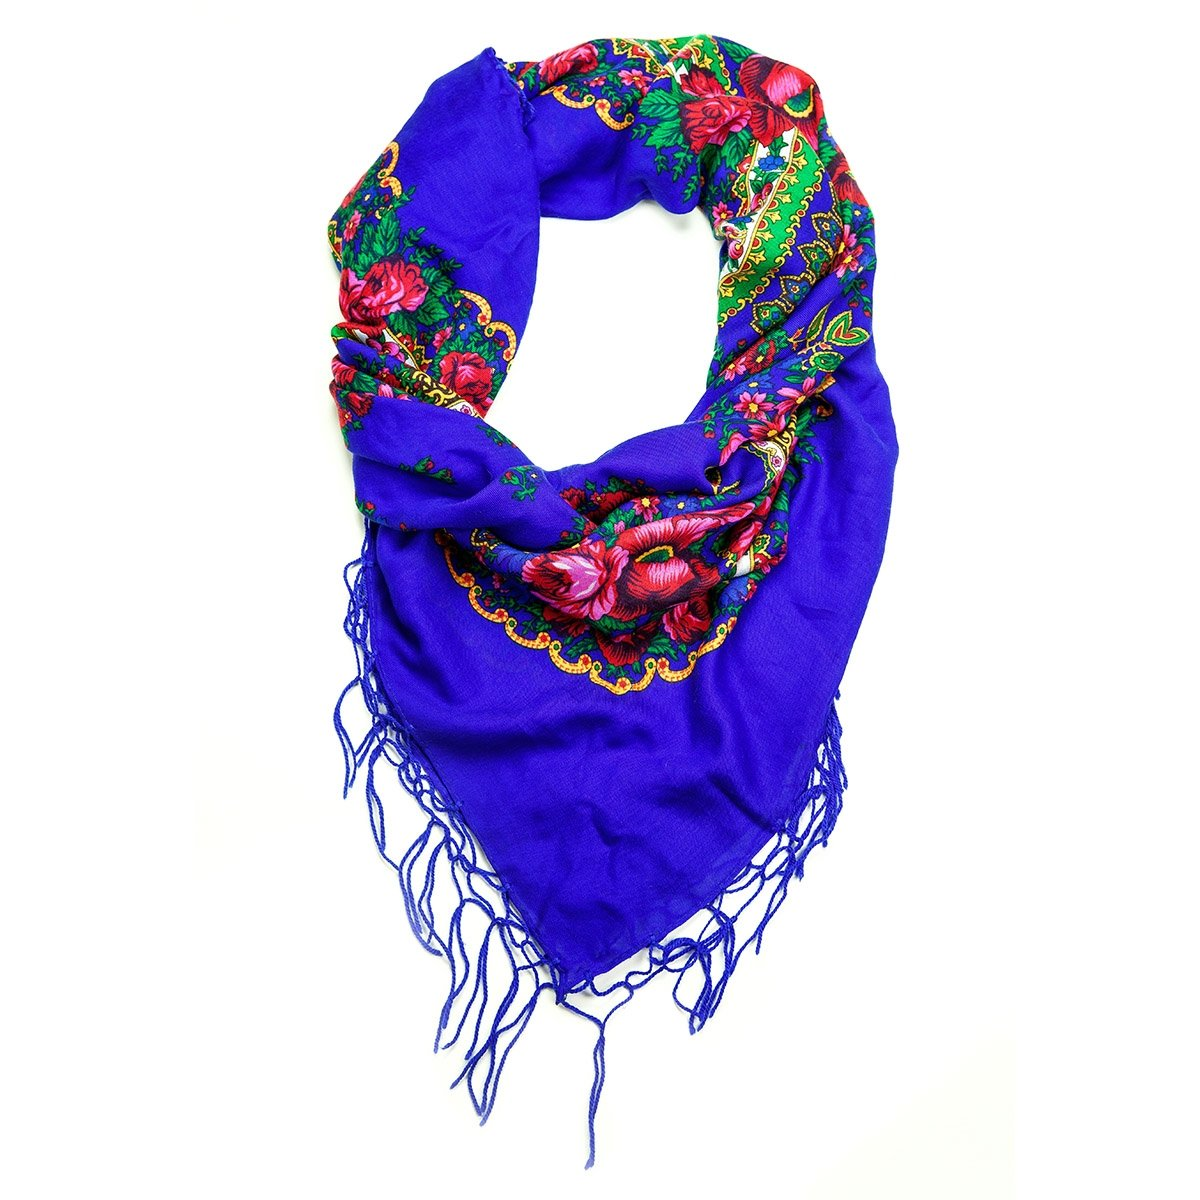 Duo de foulards maman enfant